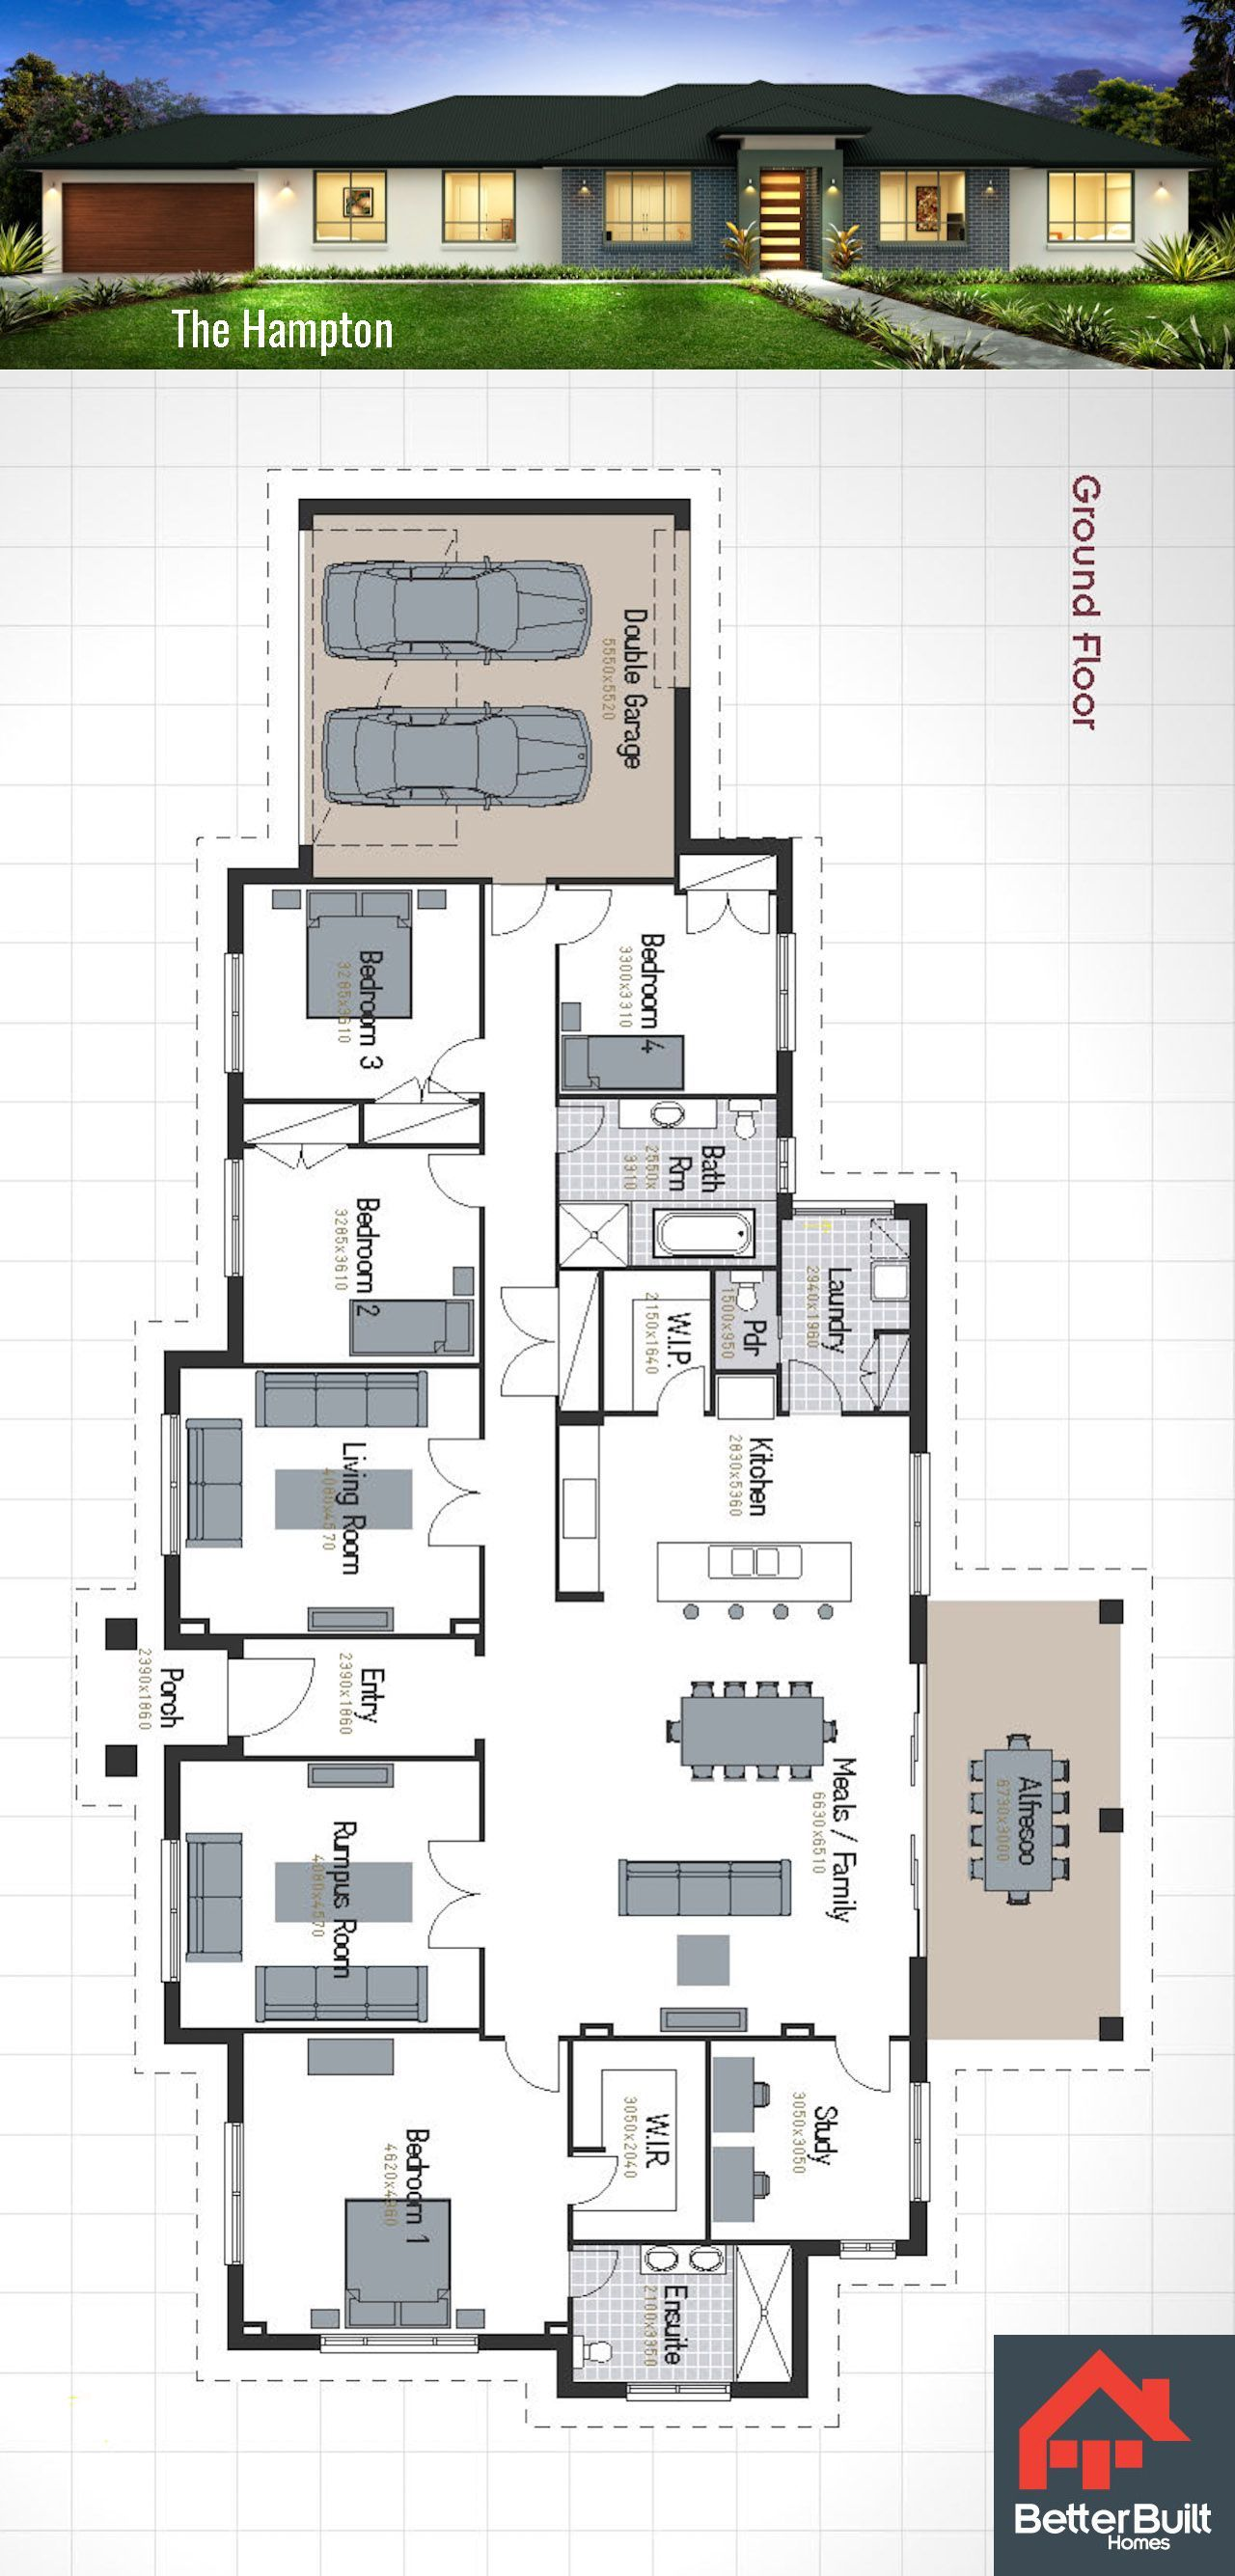 Single Storey House Design The Hampton Perfect For Larger Blocks Or Corner Allotments The Hampto My House Plans House Plan Gallery Home Design Floor Plans